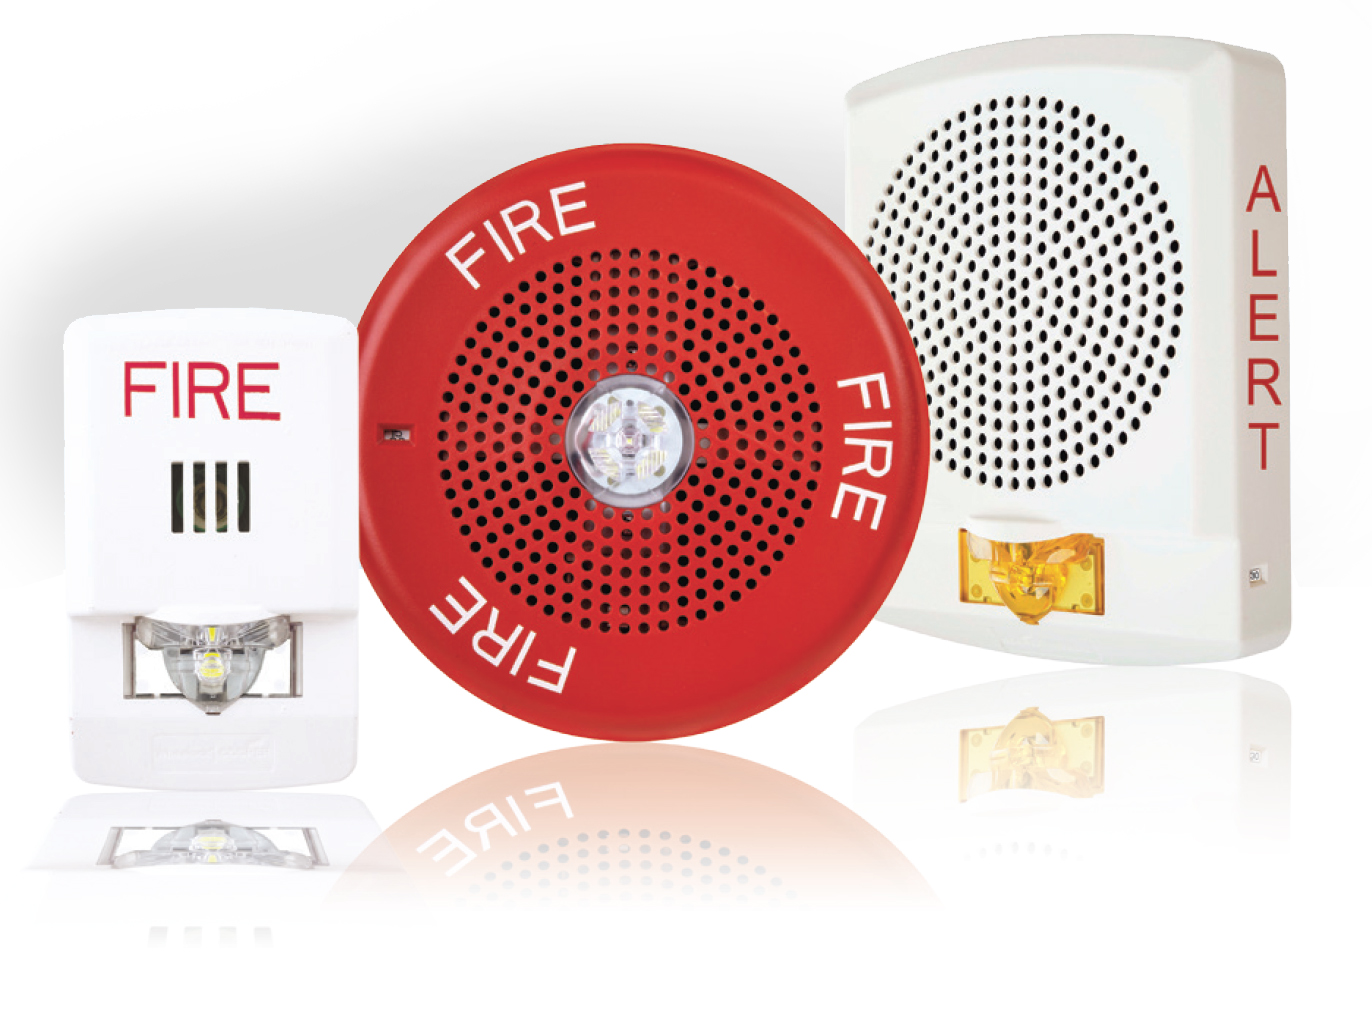 Fire Alarm Notification Appliances